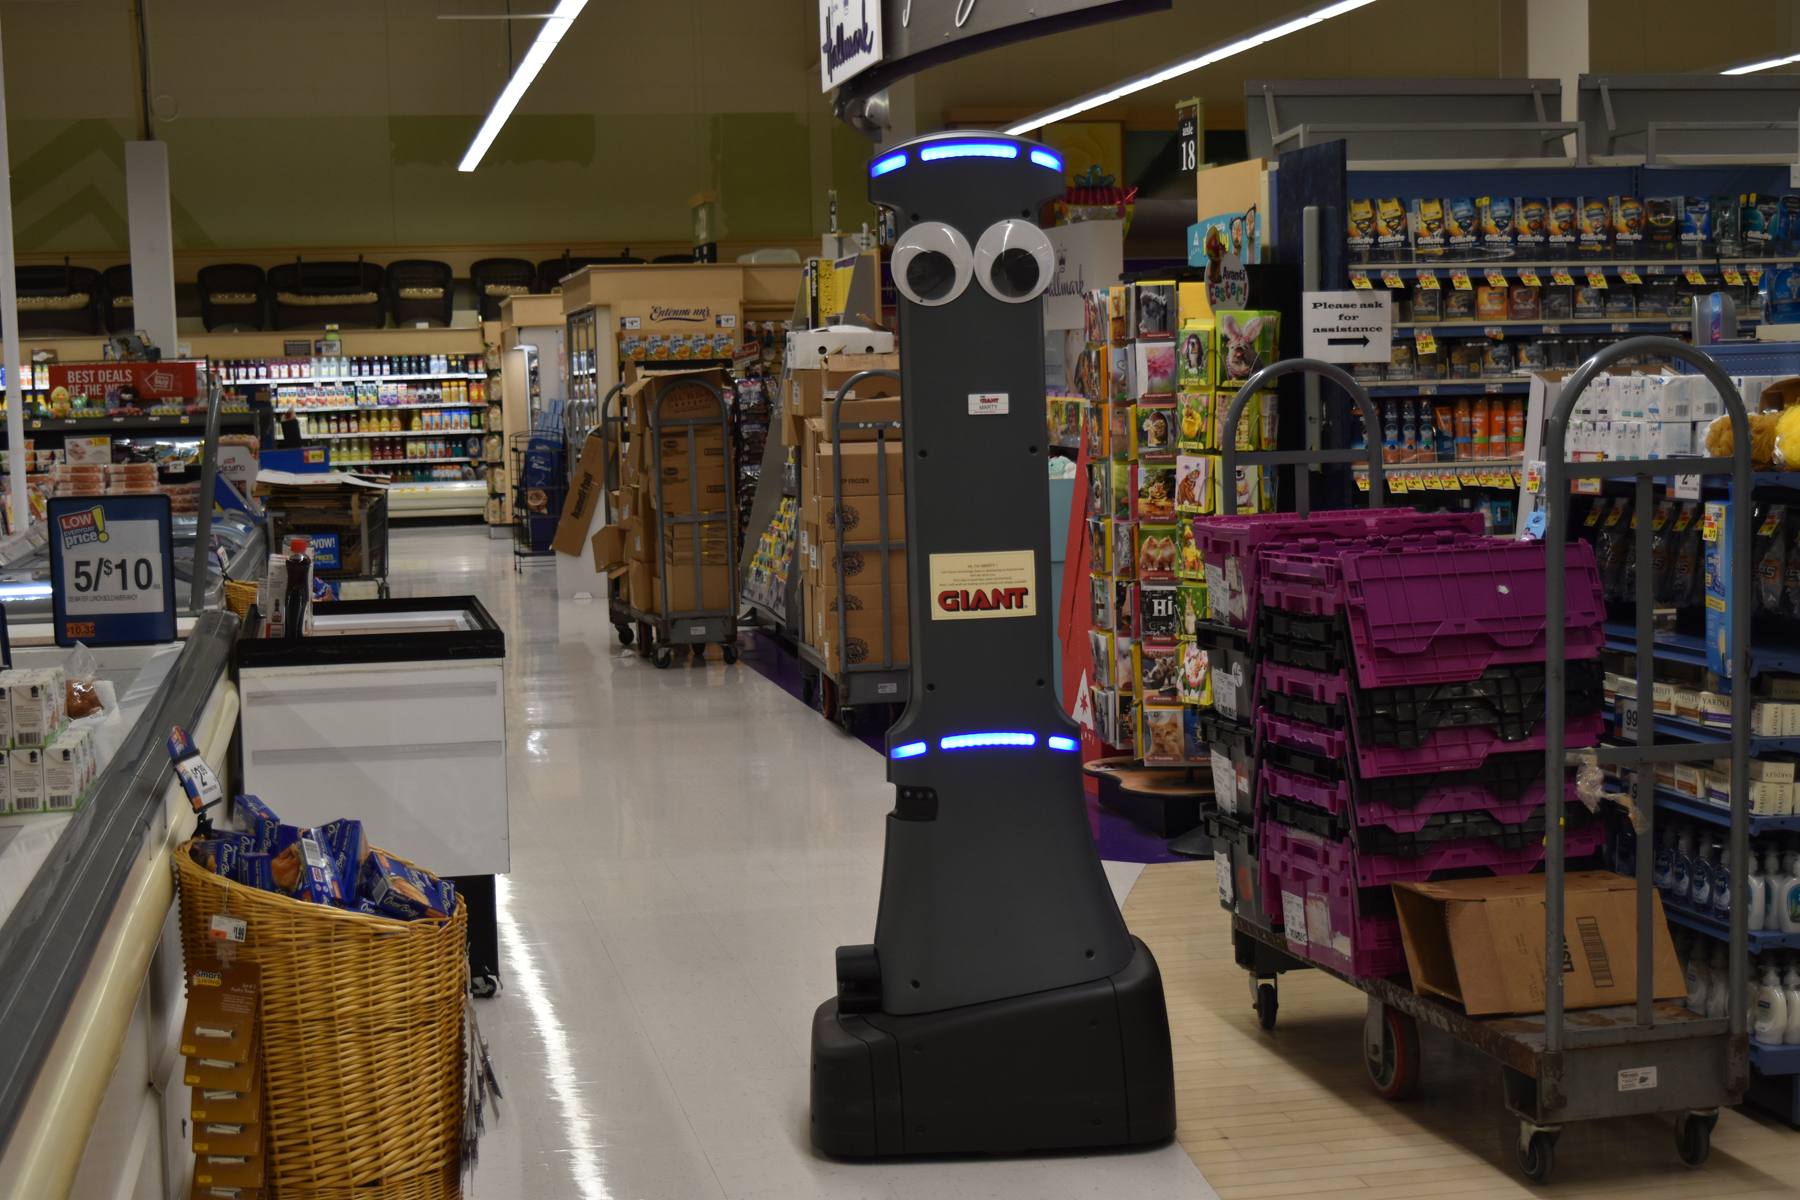 Giant Food Stores Gives Marty The Robot An Important Job